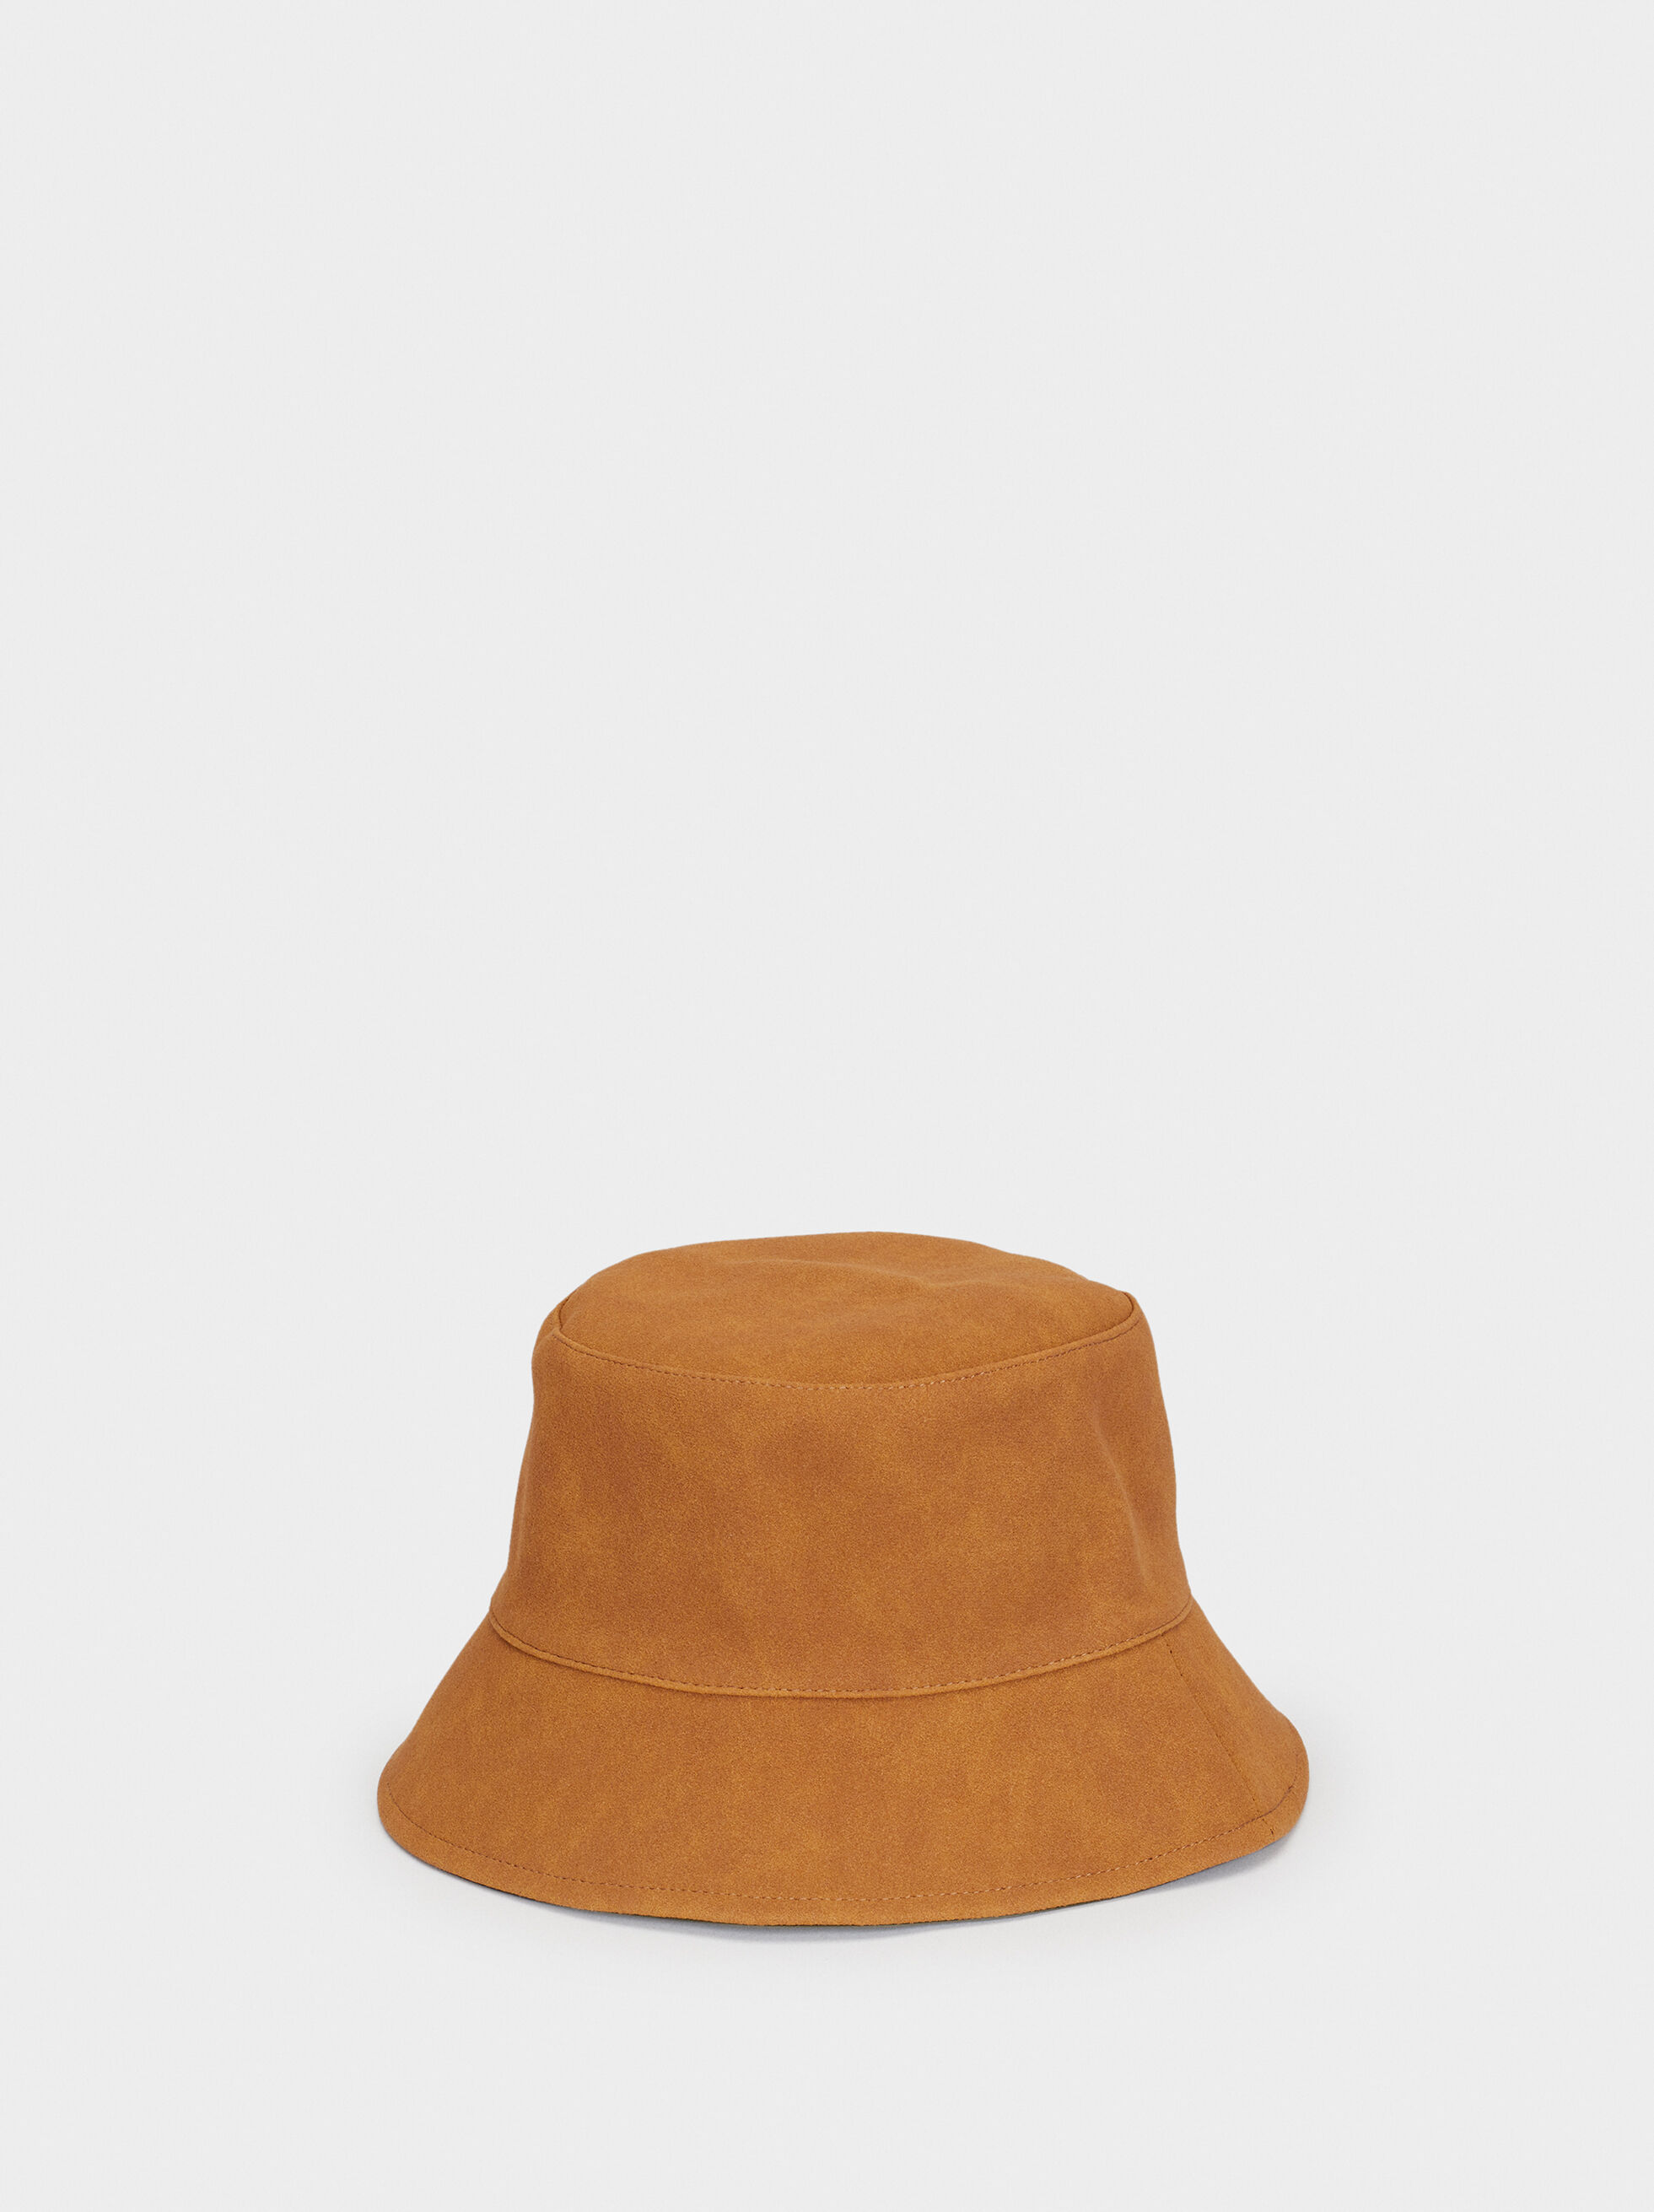 General Hats Hat, Camel, hi-res